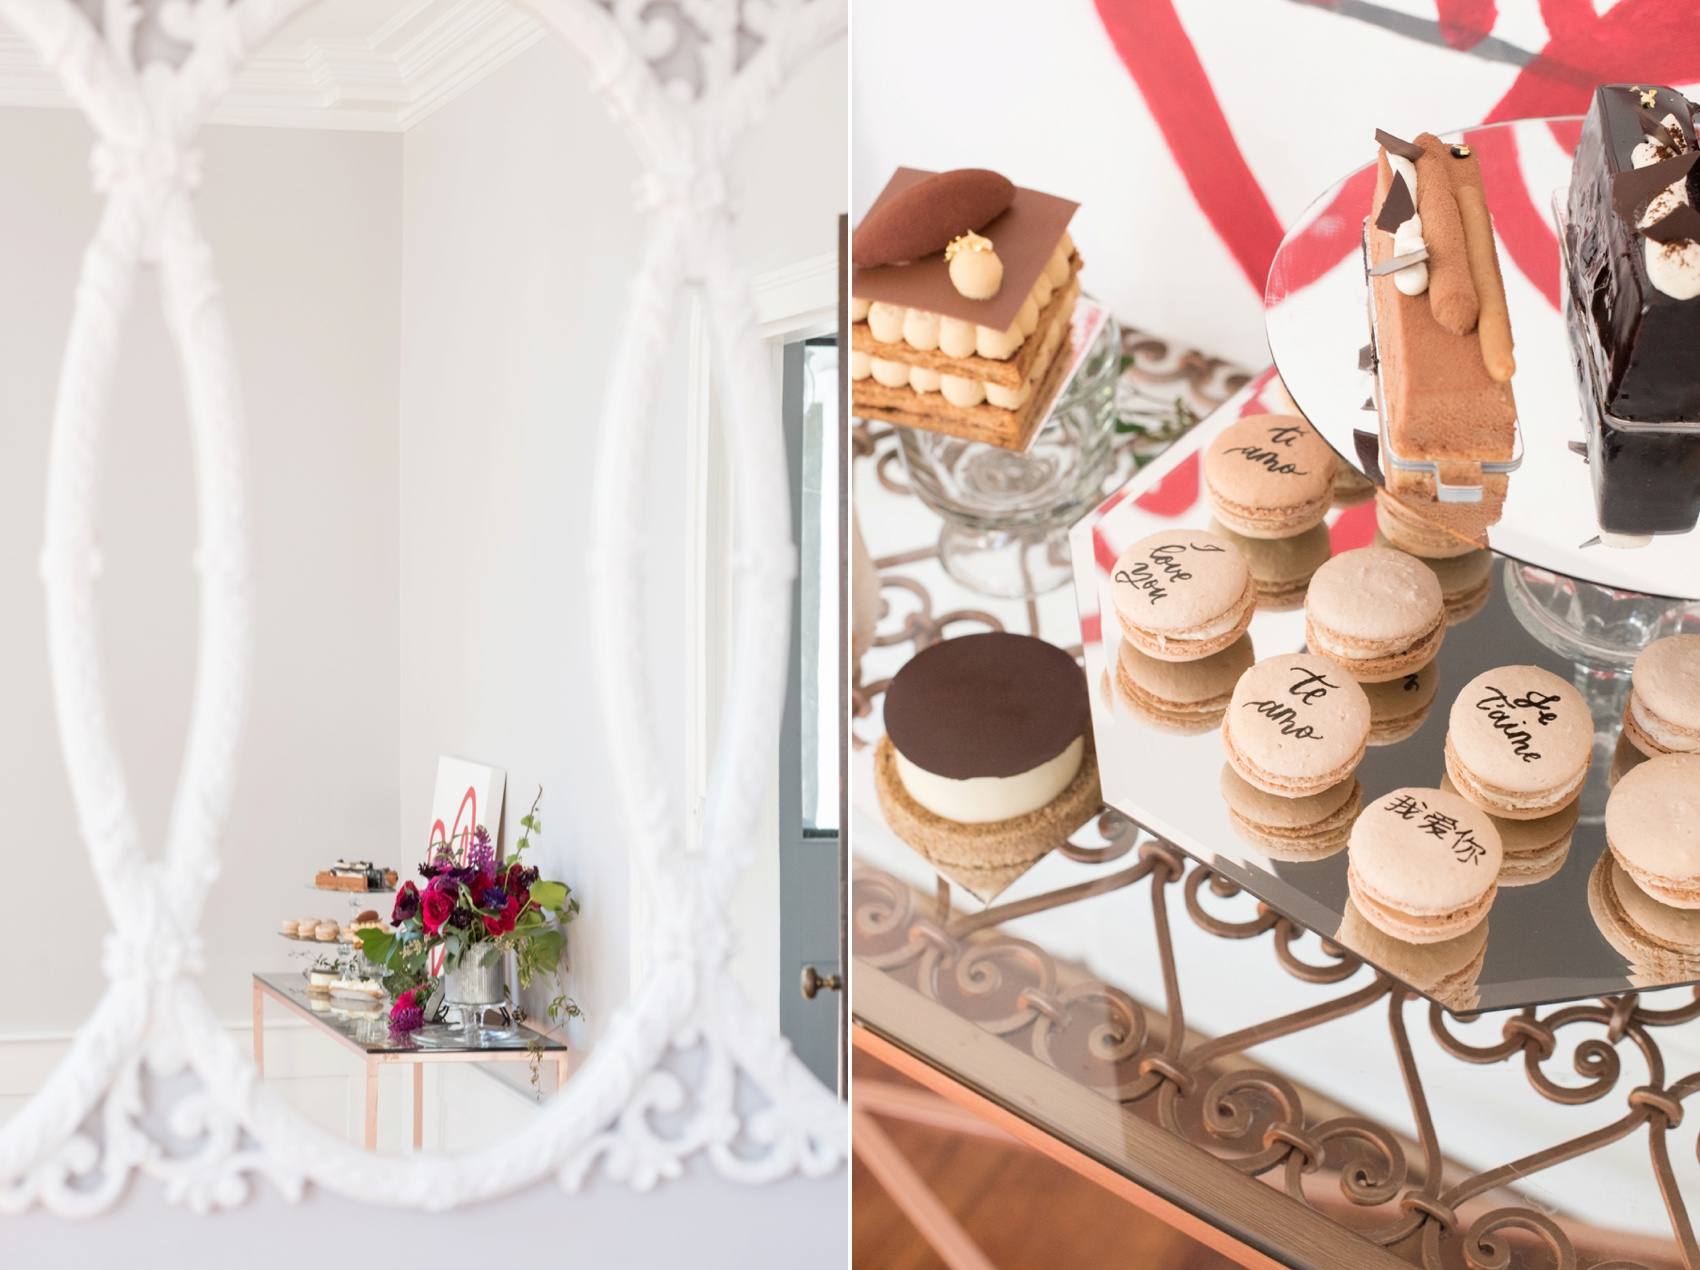 Mim's House NC proposal photos by Mikkel Paige Photography. French pastry dessert table and custom nail art.